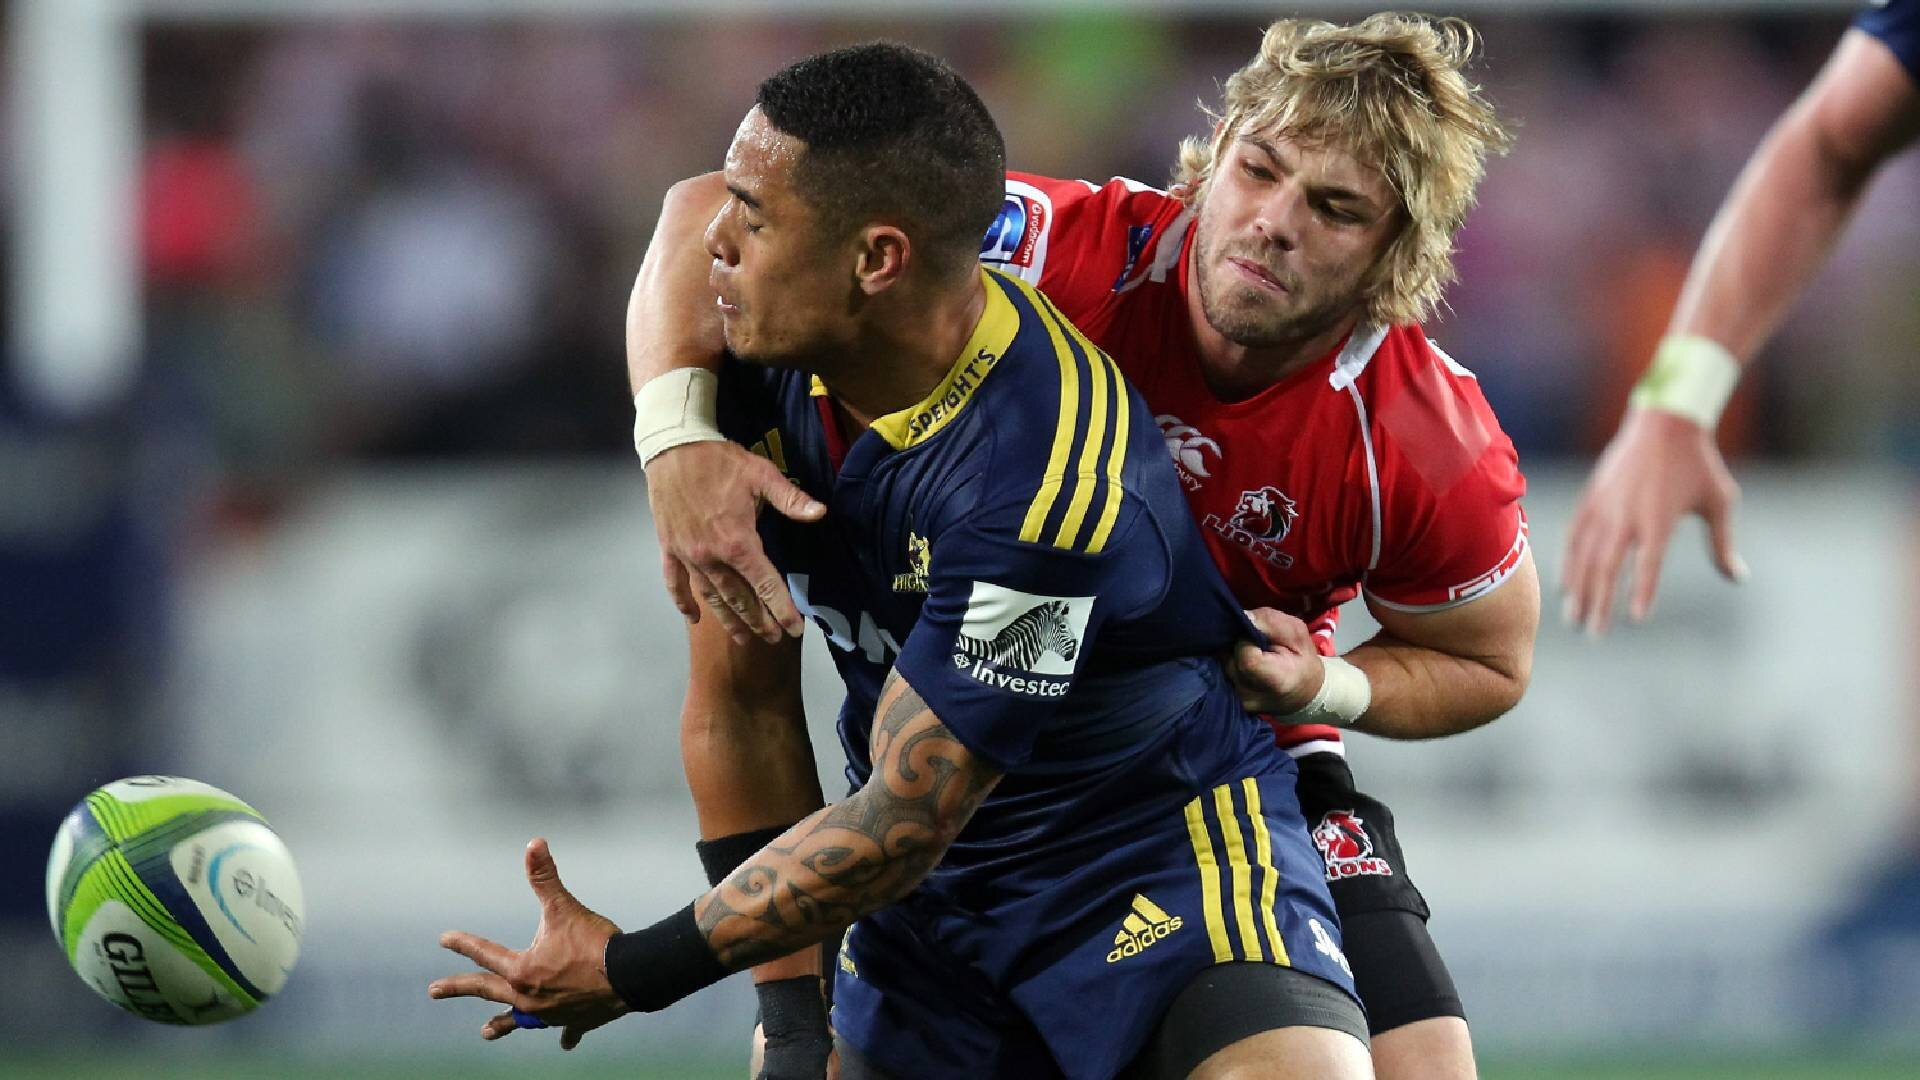 Smith, De Klerk, Murray, Dupont in four-way race to be crowned world's best halfback